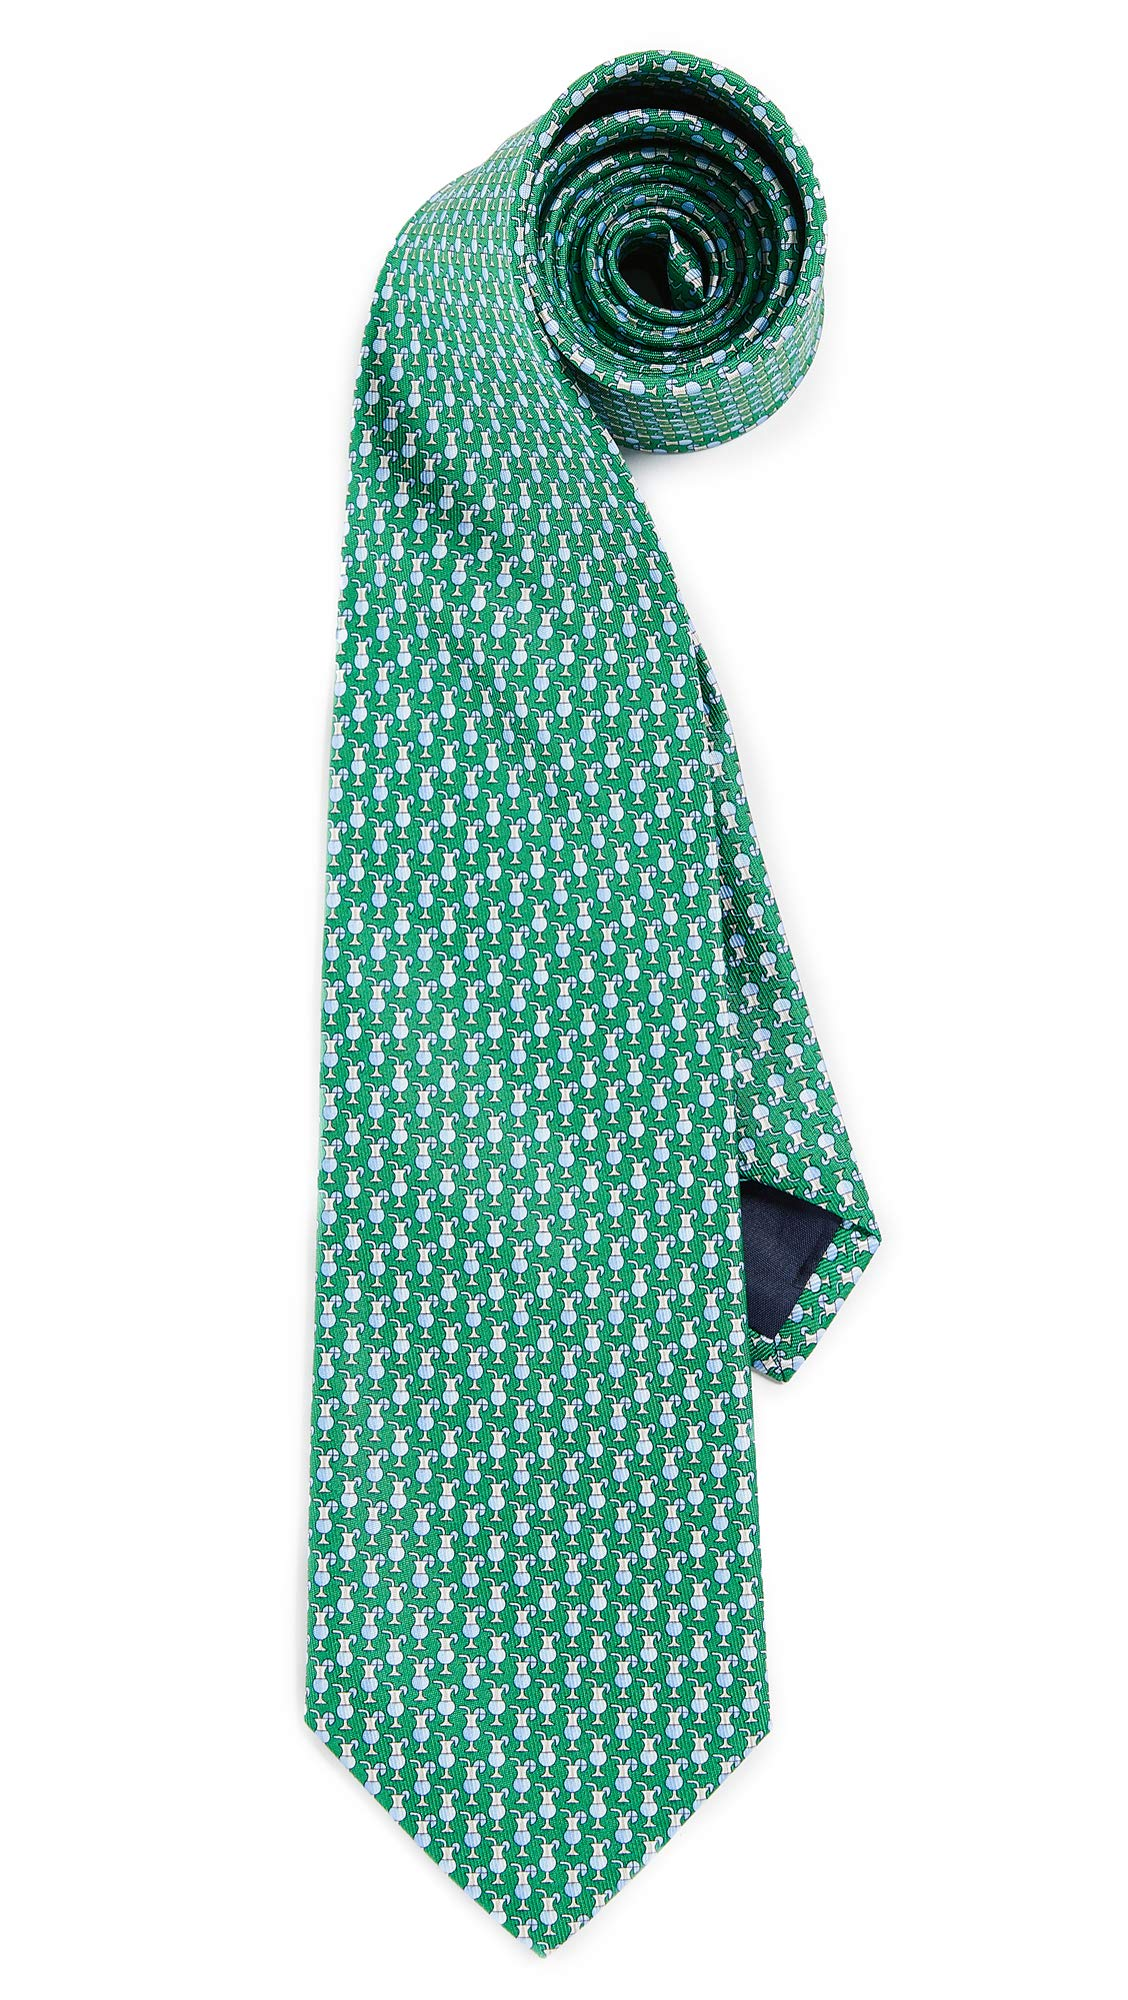 Salvatore Ferragamo Men's Drink Print Tie, Green, One Size